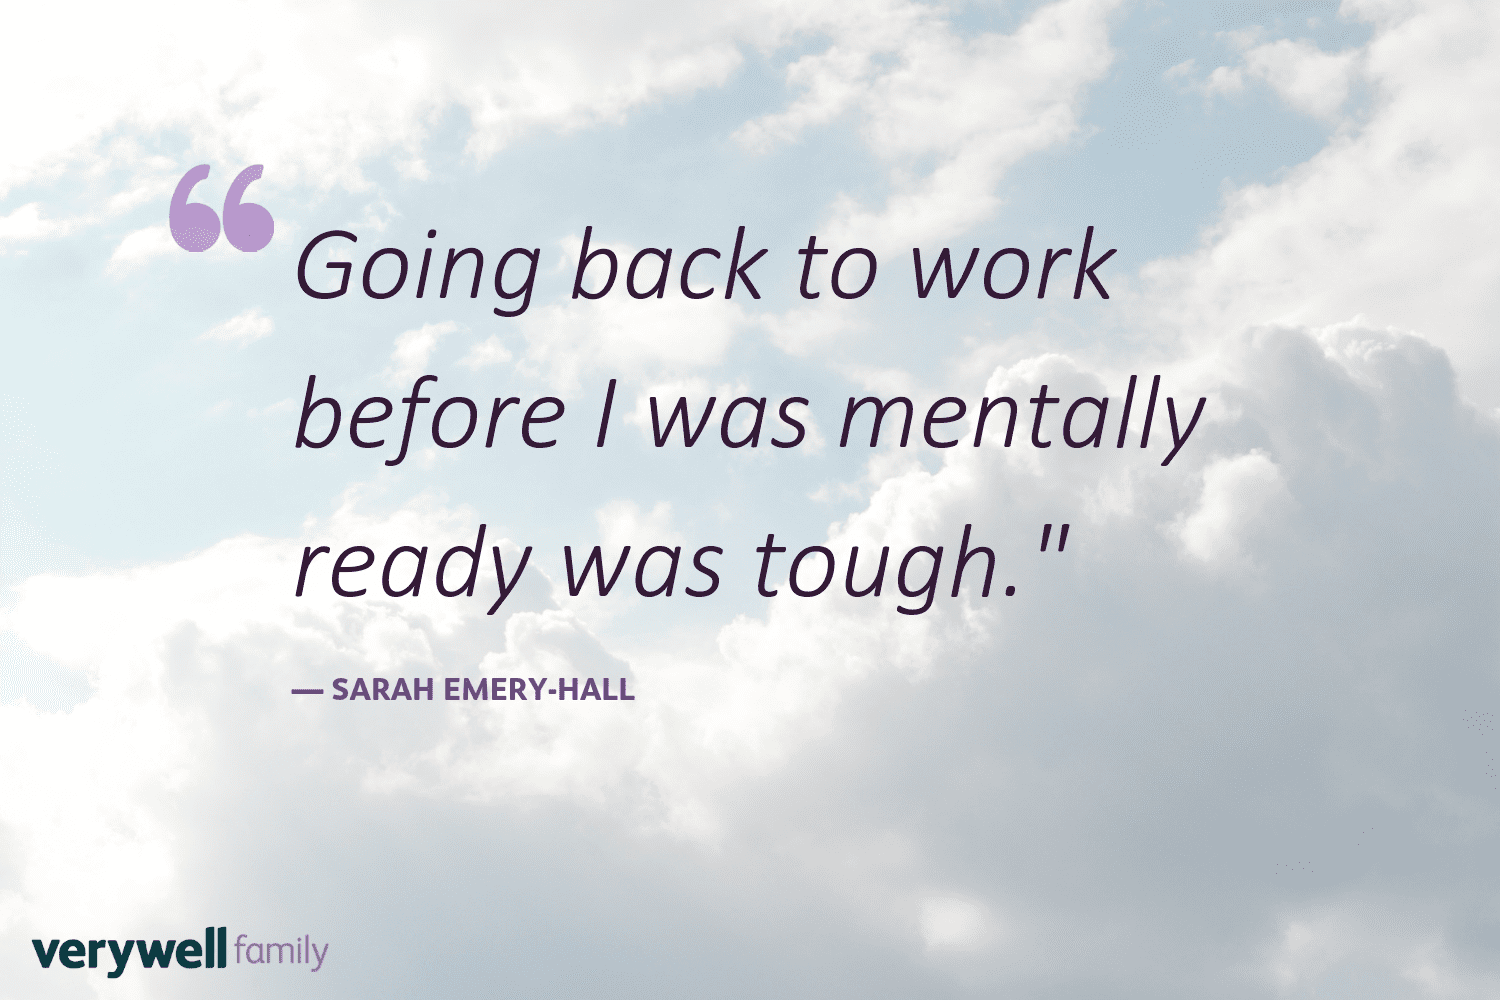 Verywell Family postpartum quote by Sarah Emery-Hall